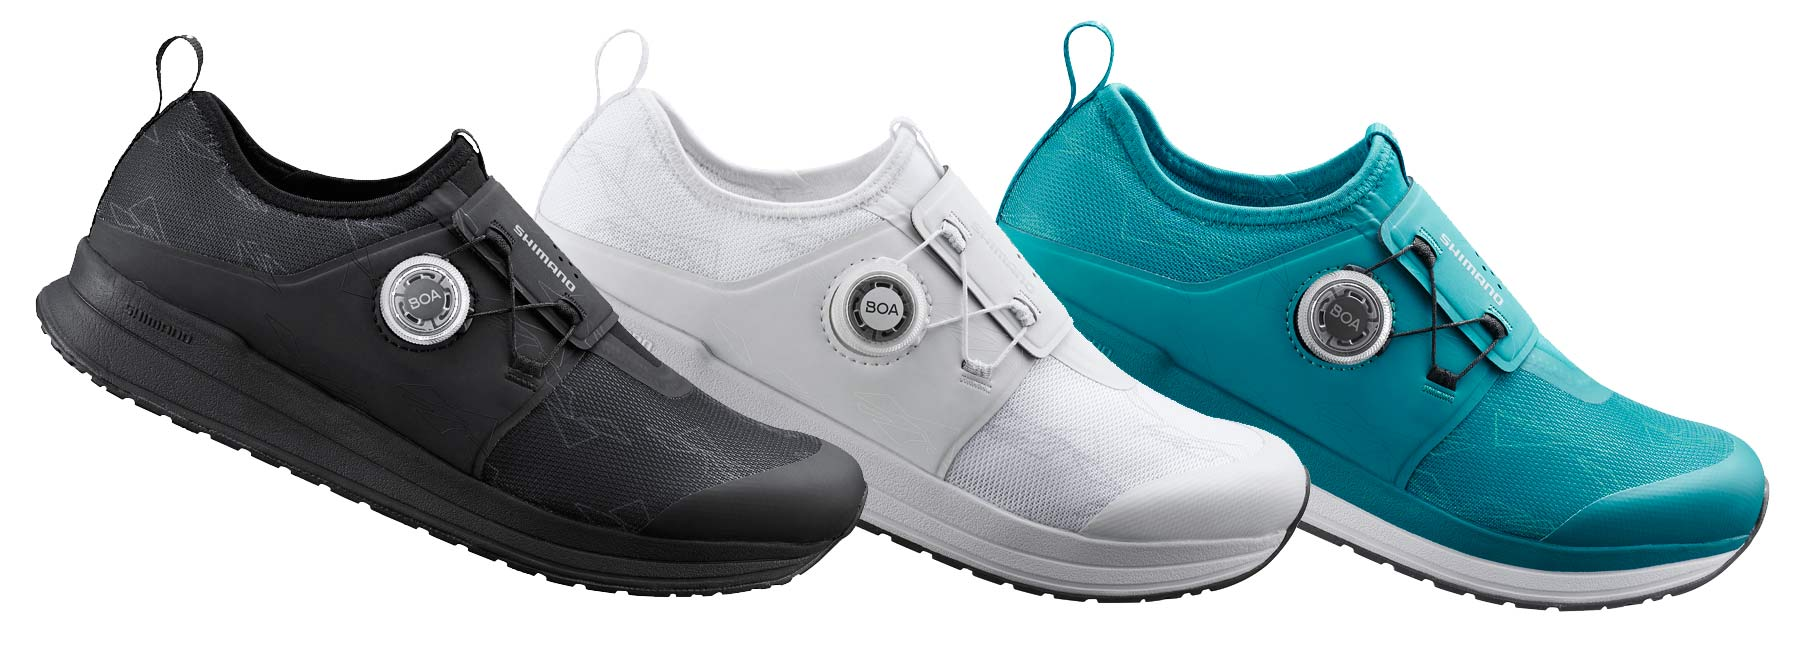 Shimano well-ventilated Indoor Cycling shoes, fitness spinning class training bike shoes